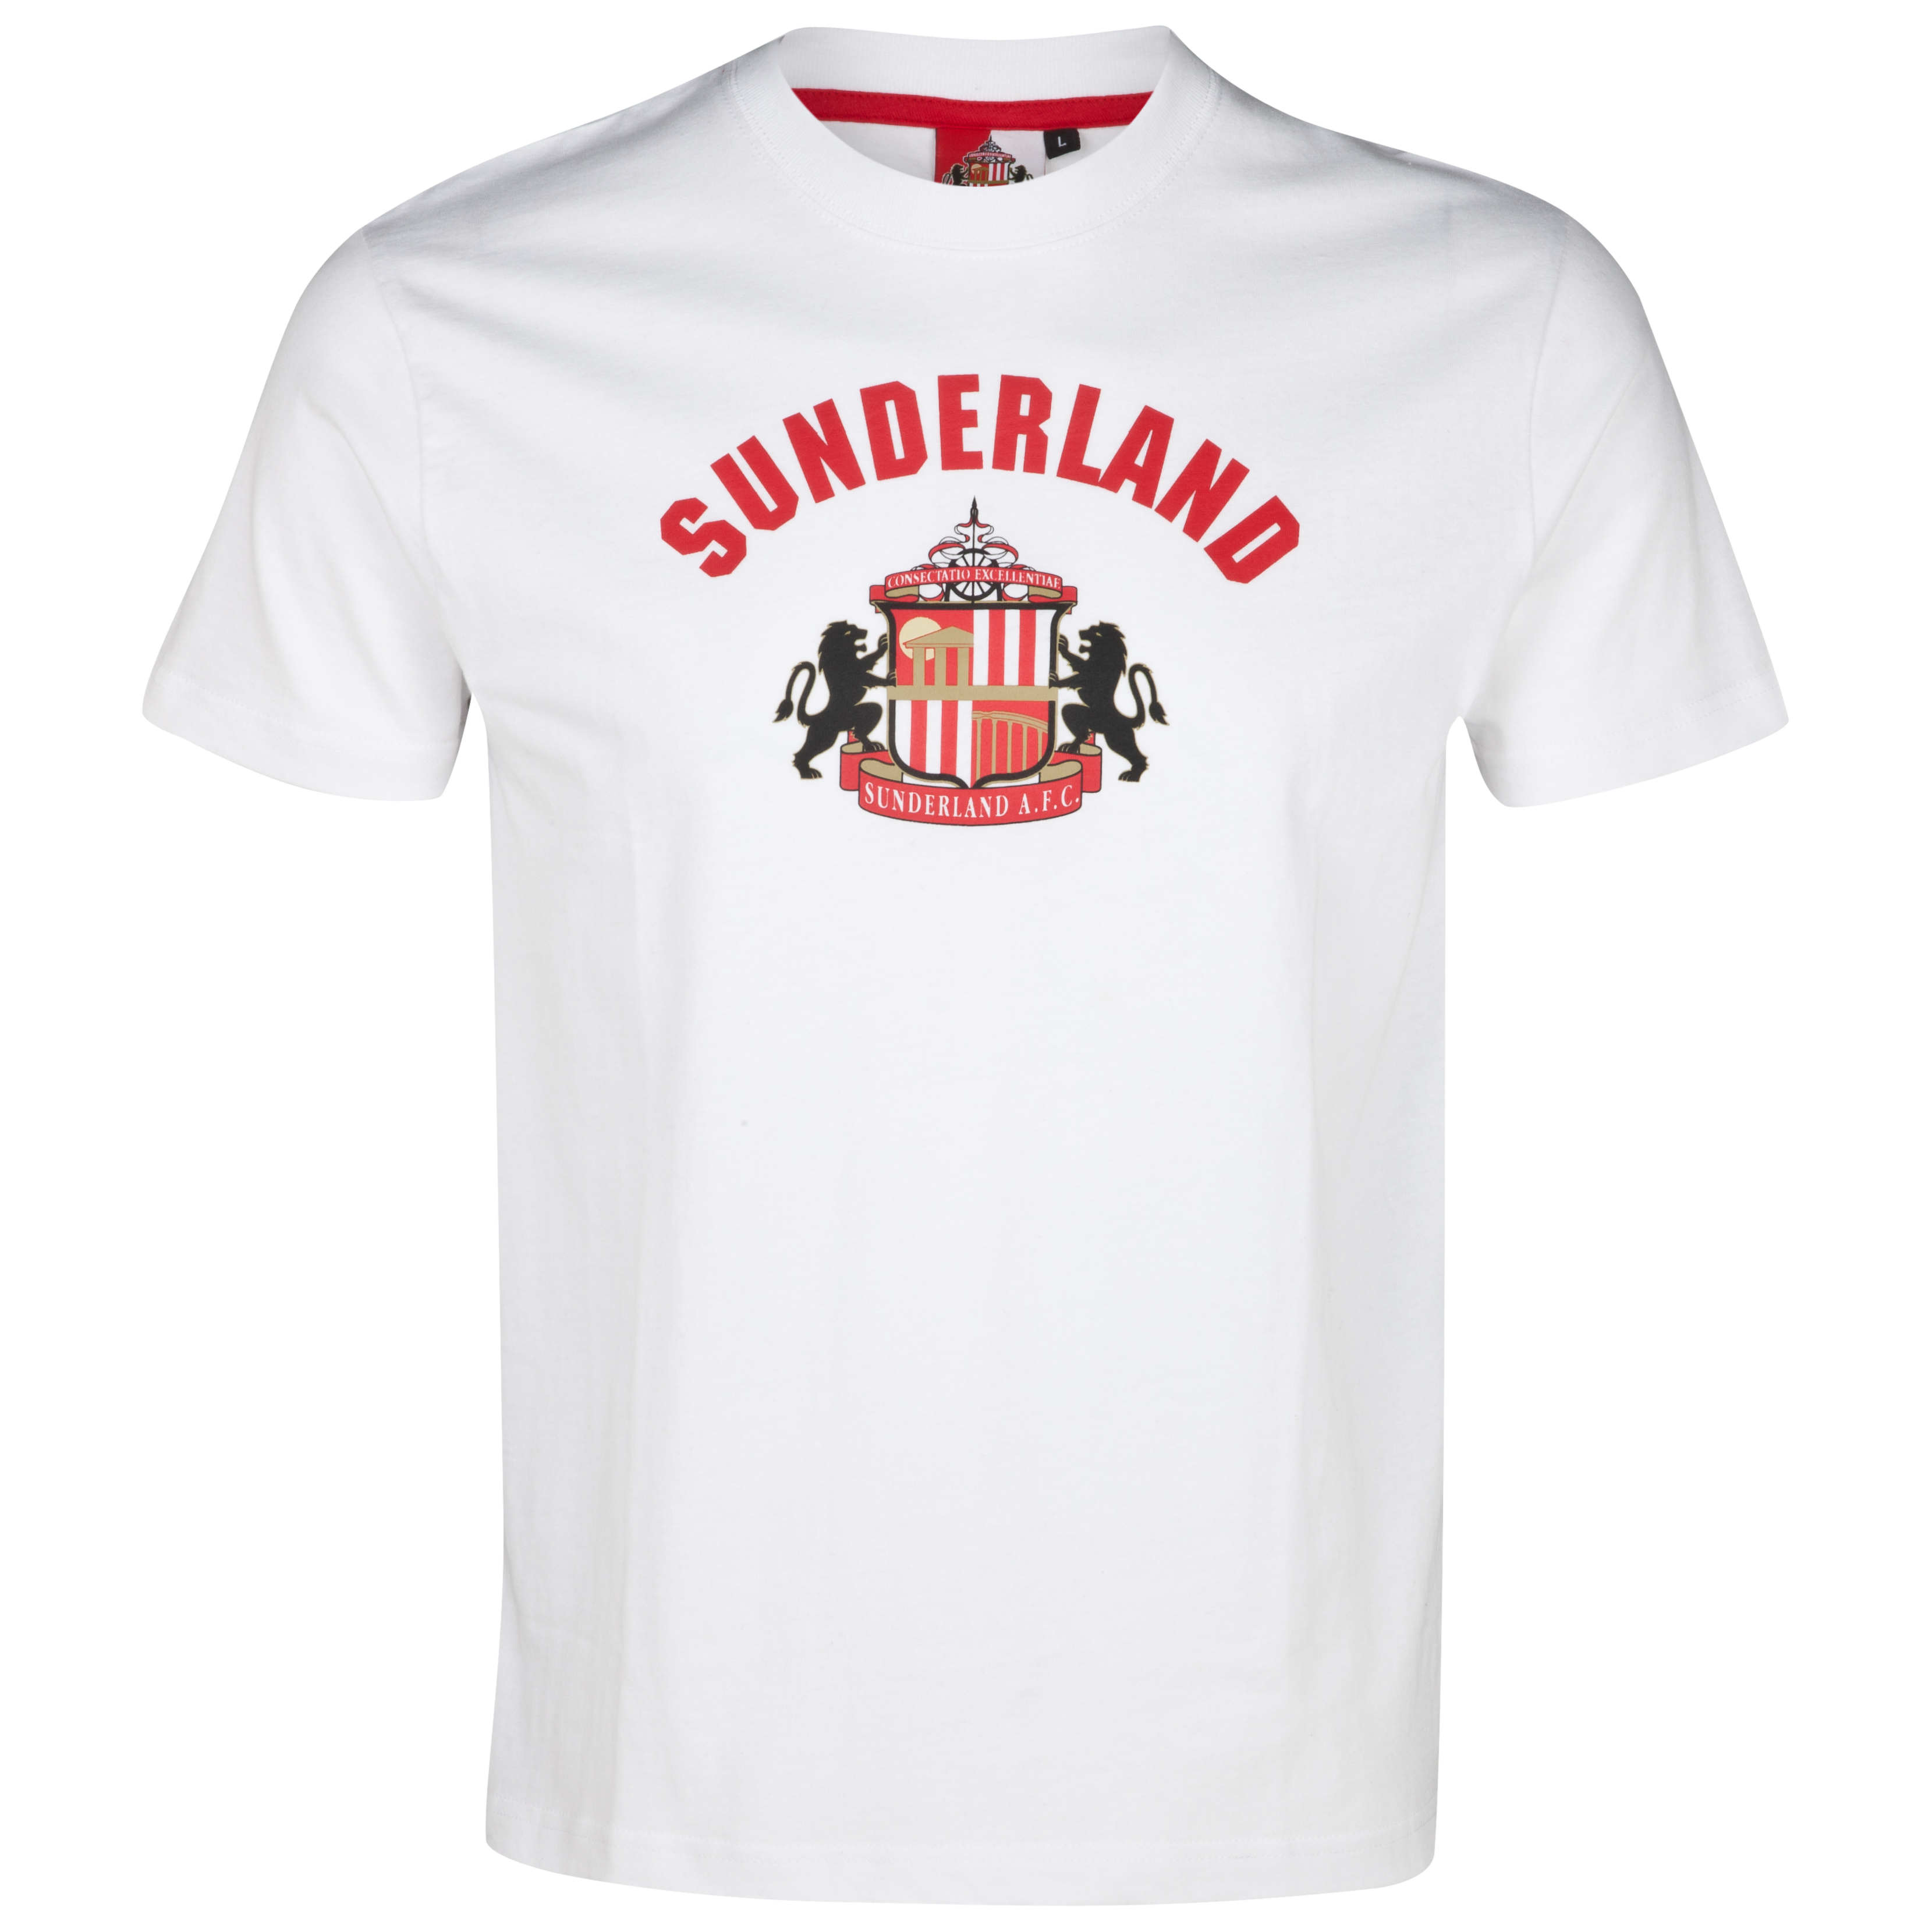 Sunderland Essential Force T-Shirt - White - Infant Boys